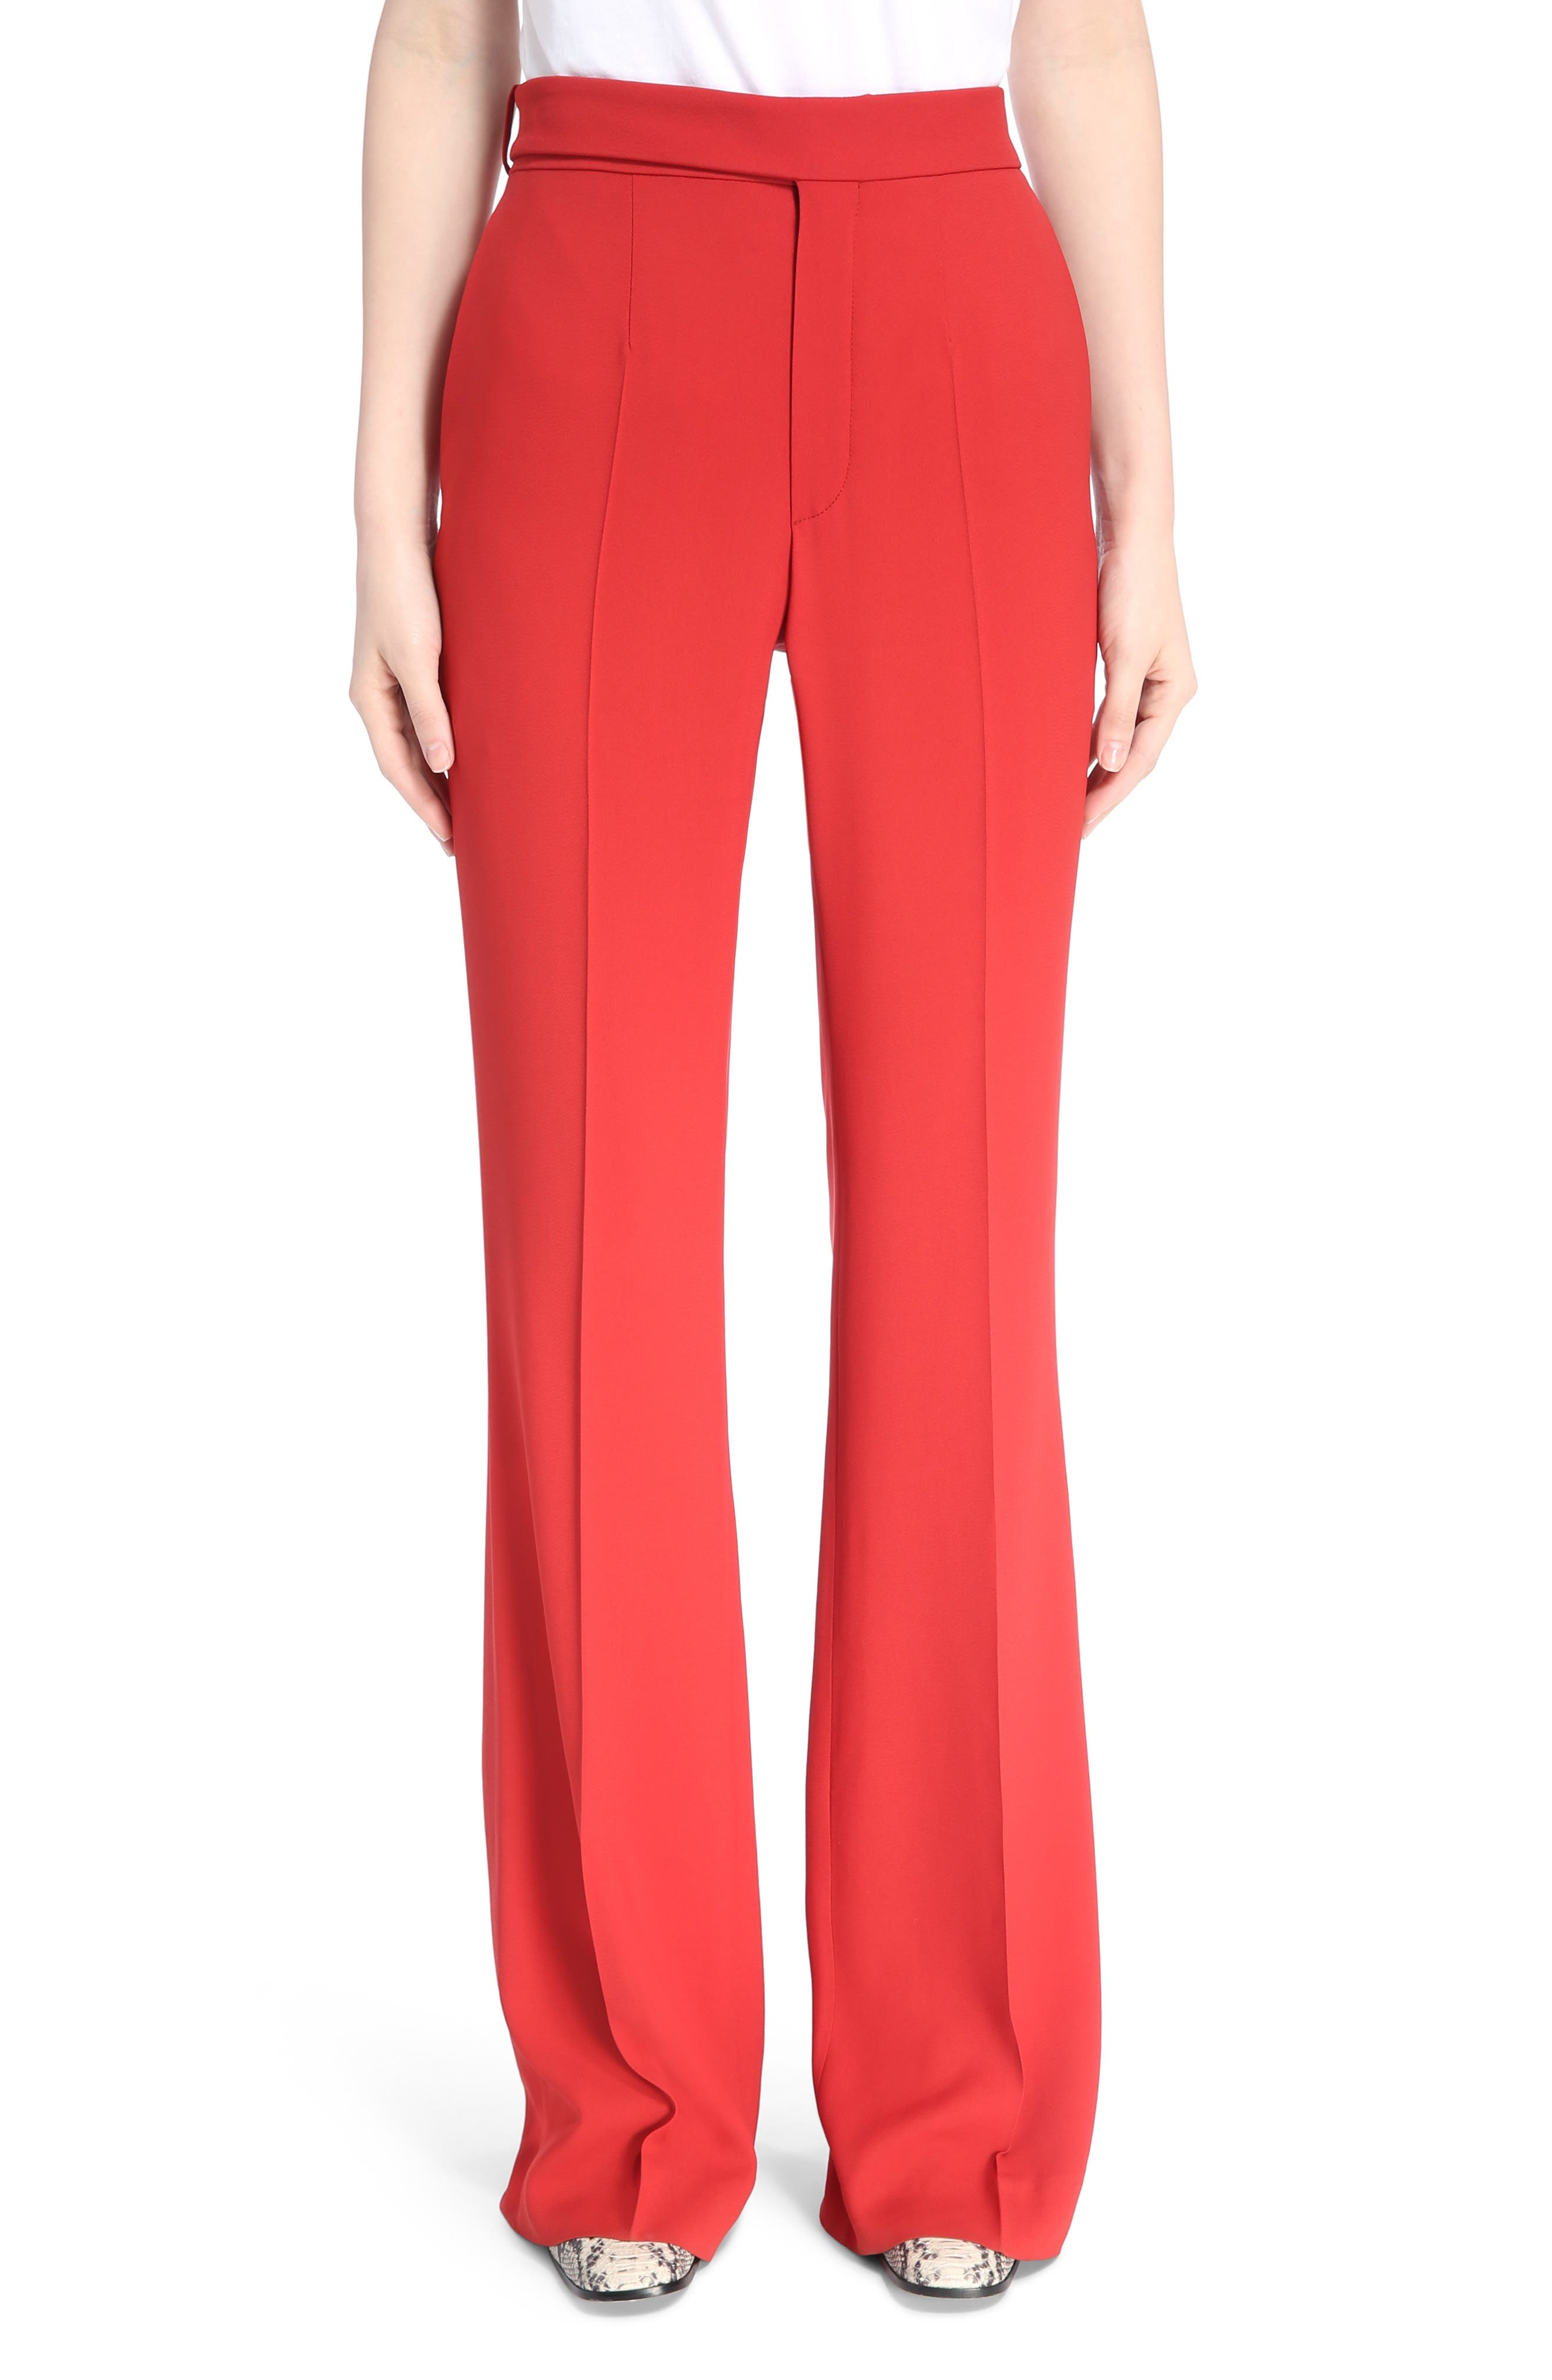 Cady Flare Suiting Pants,                             Main thumbnail 1, color,                             Ginger Red